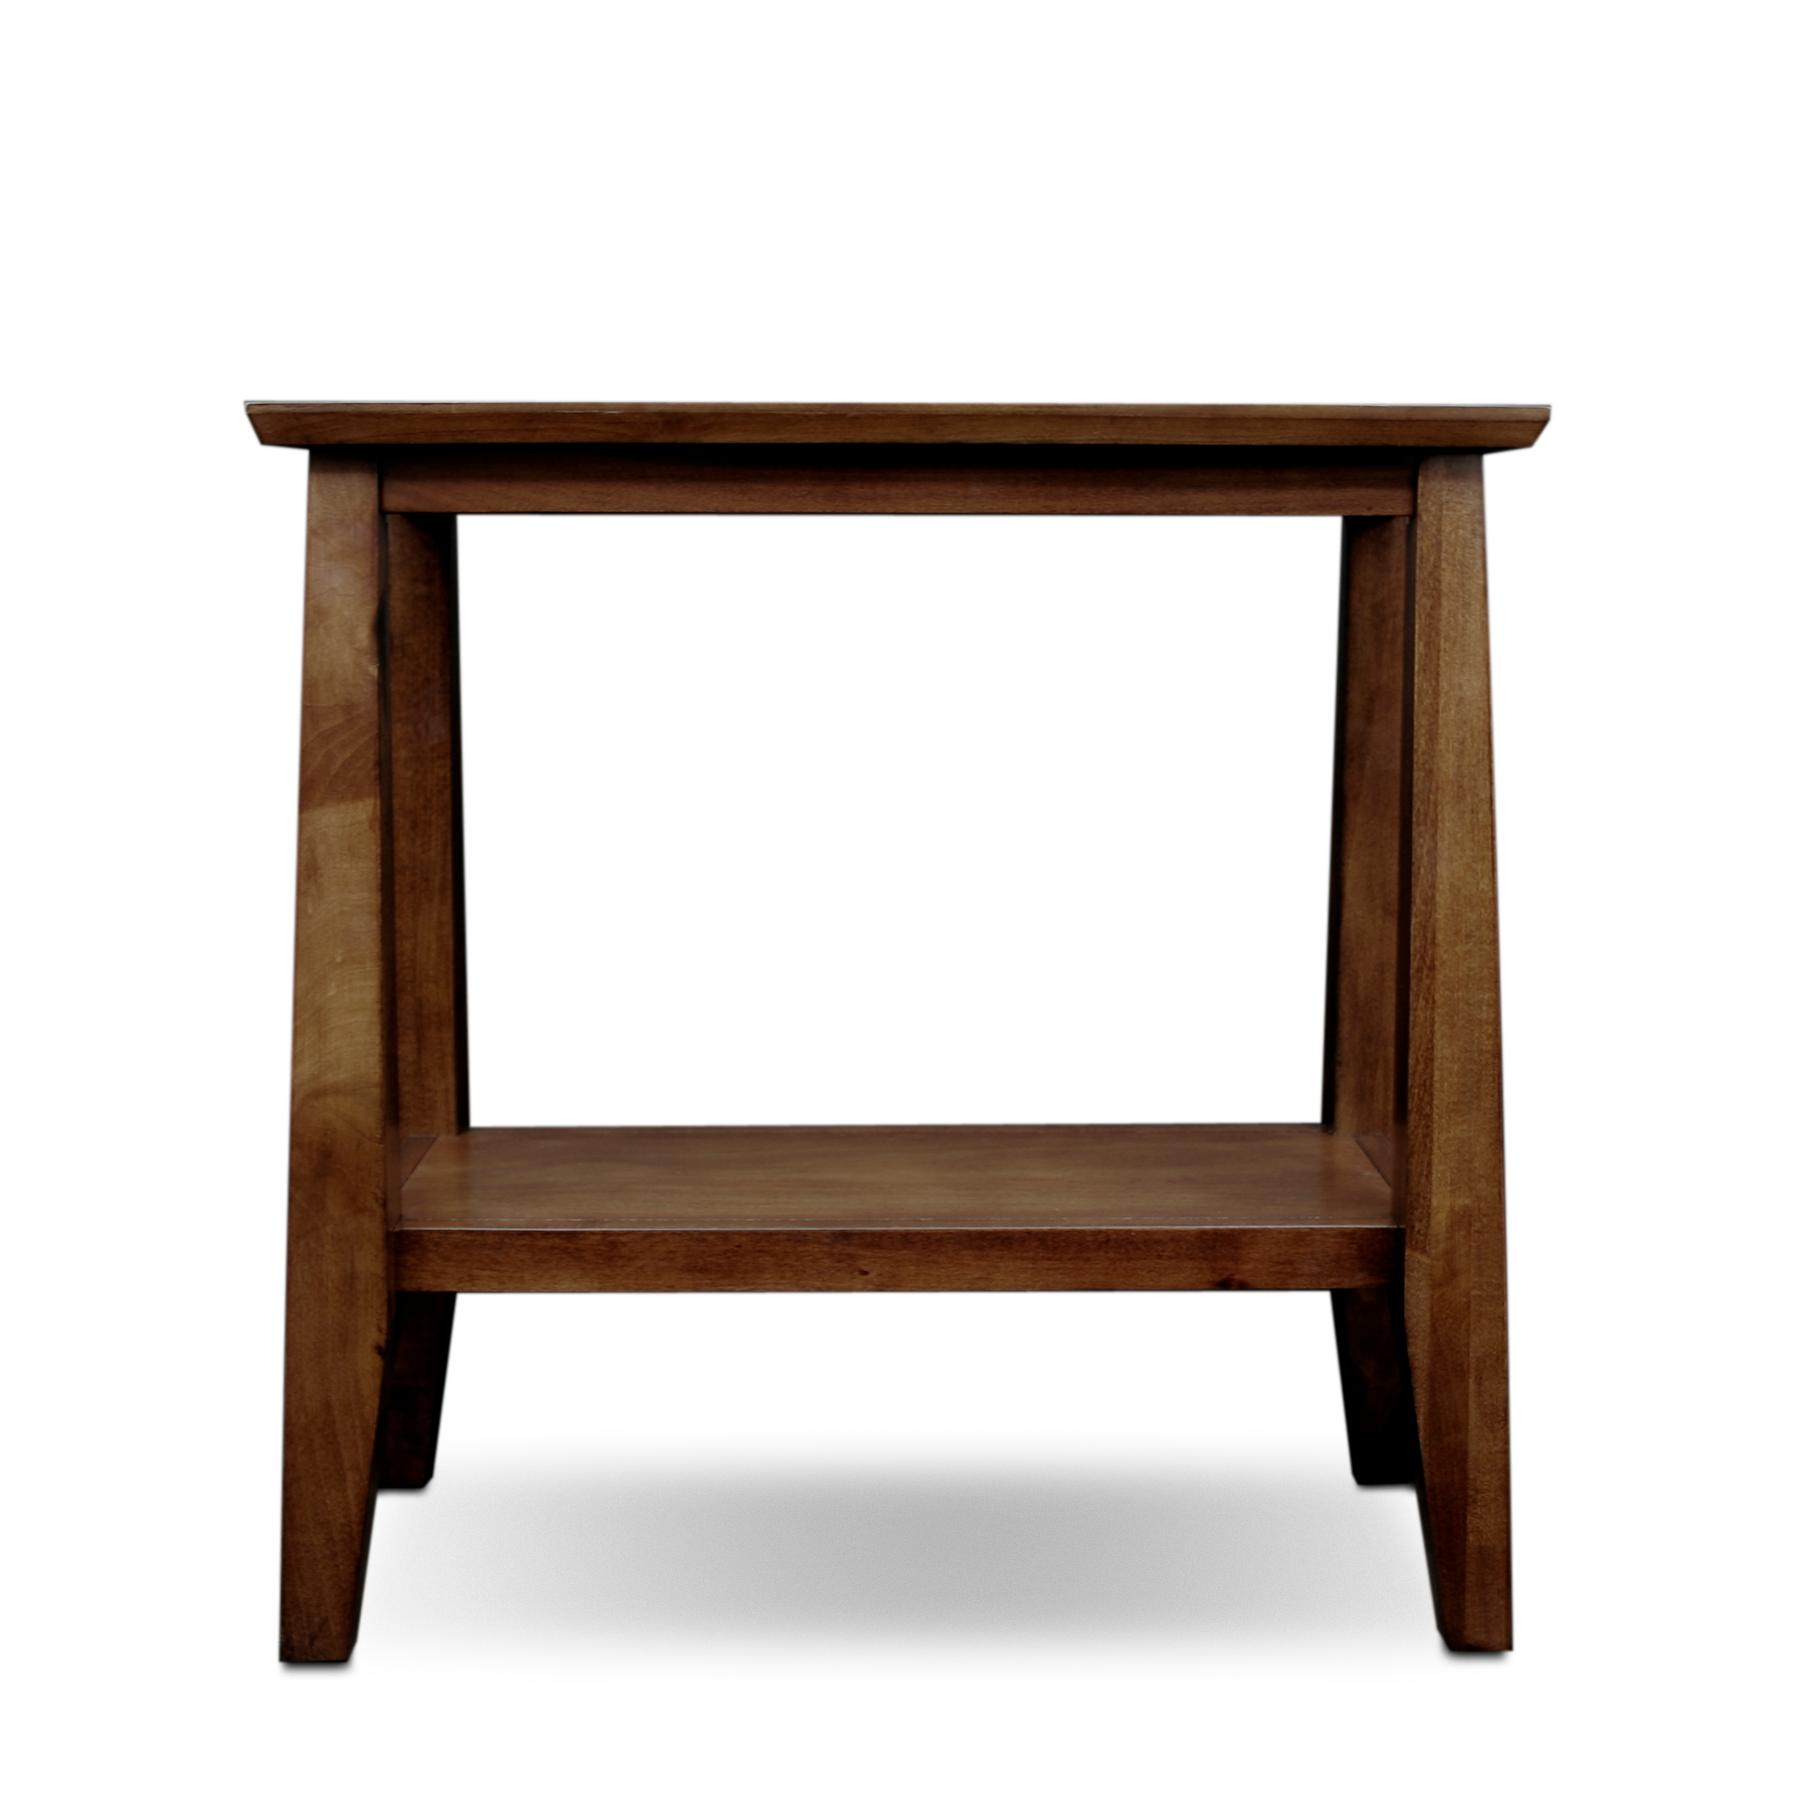 End tables side tables chair side tables chairside tables for Narrow end table